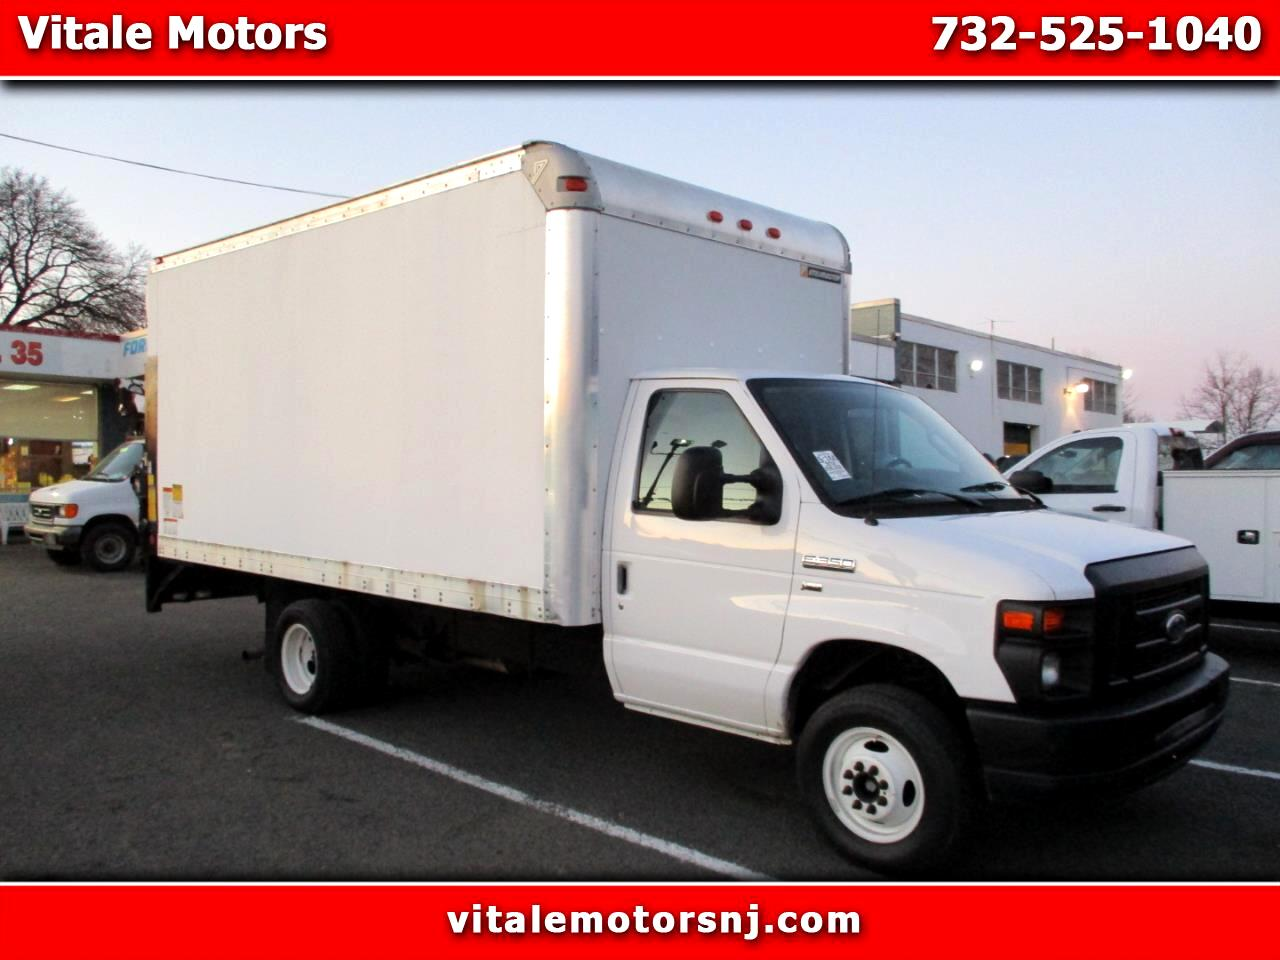 2014 Ford Econoline E-350 BOX TRUCK 15 FOOT W/ LIFTGATE